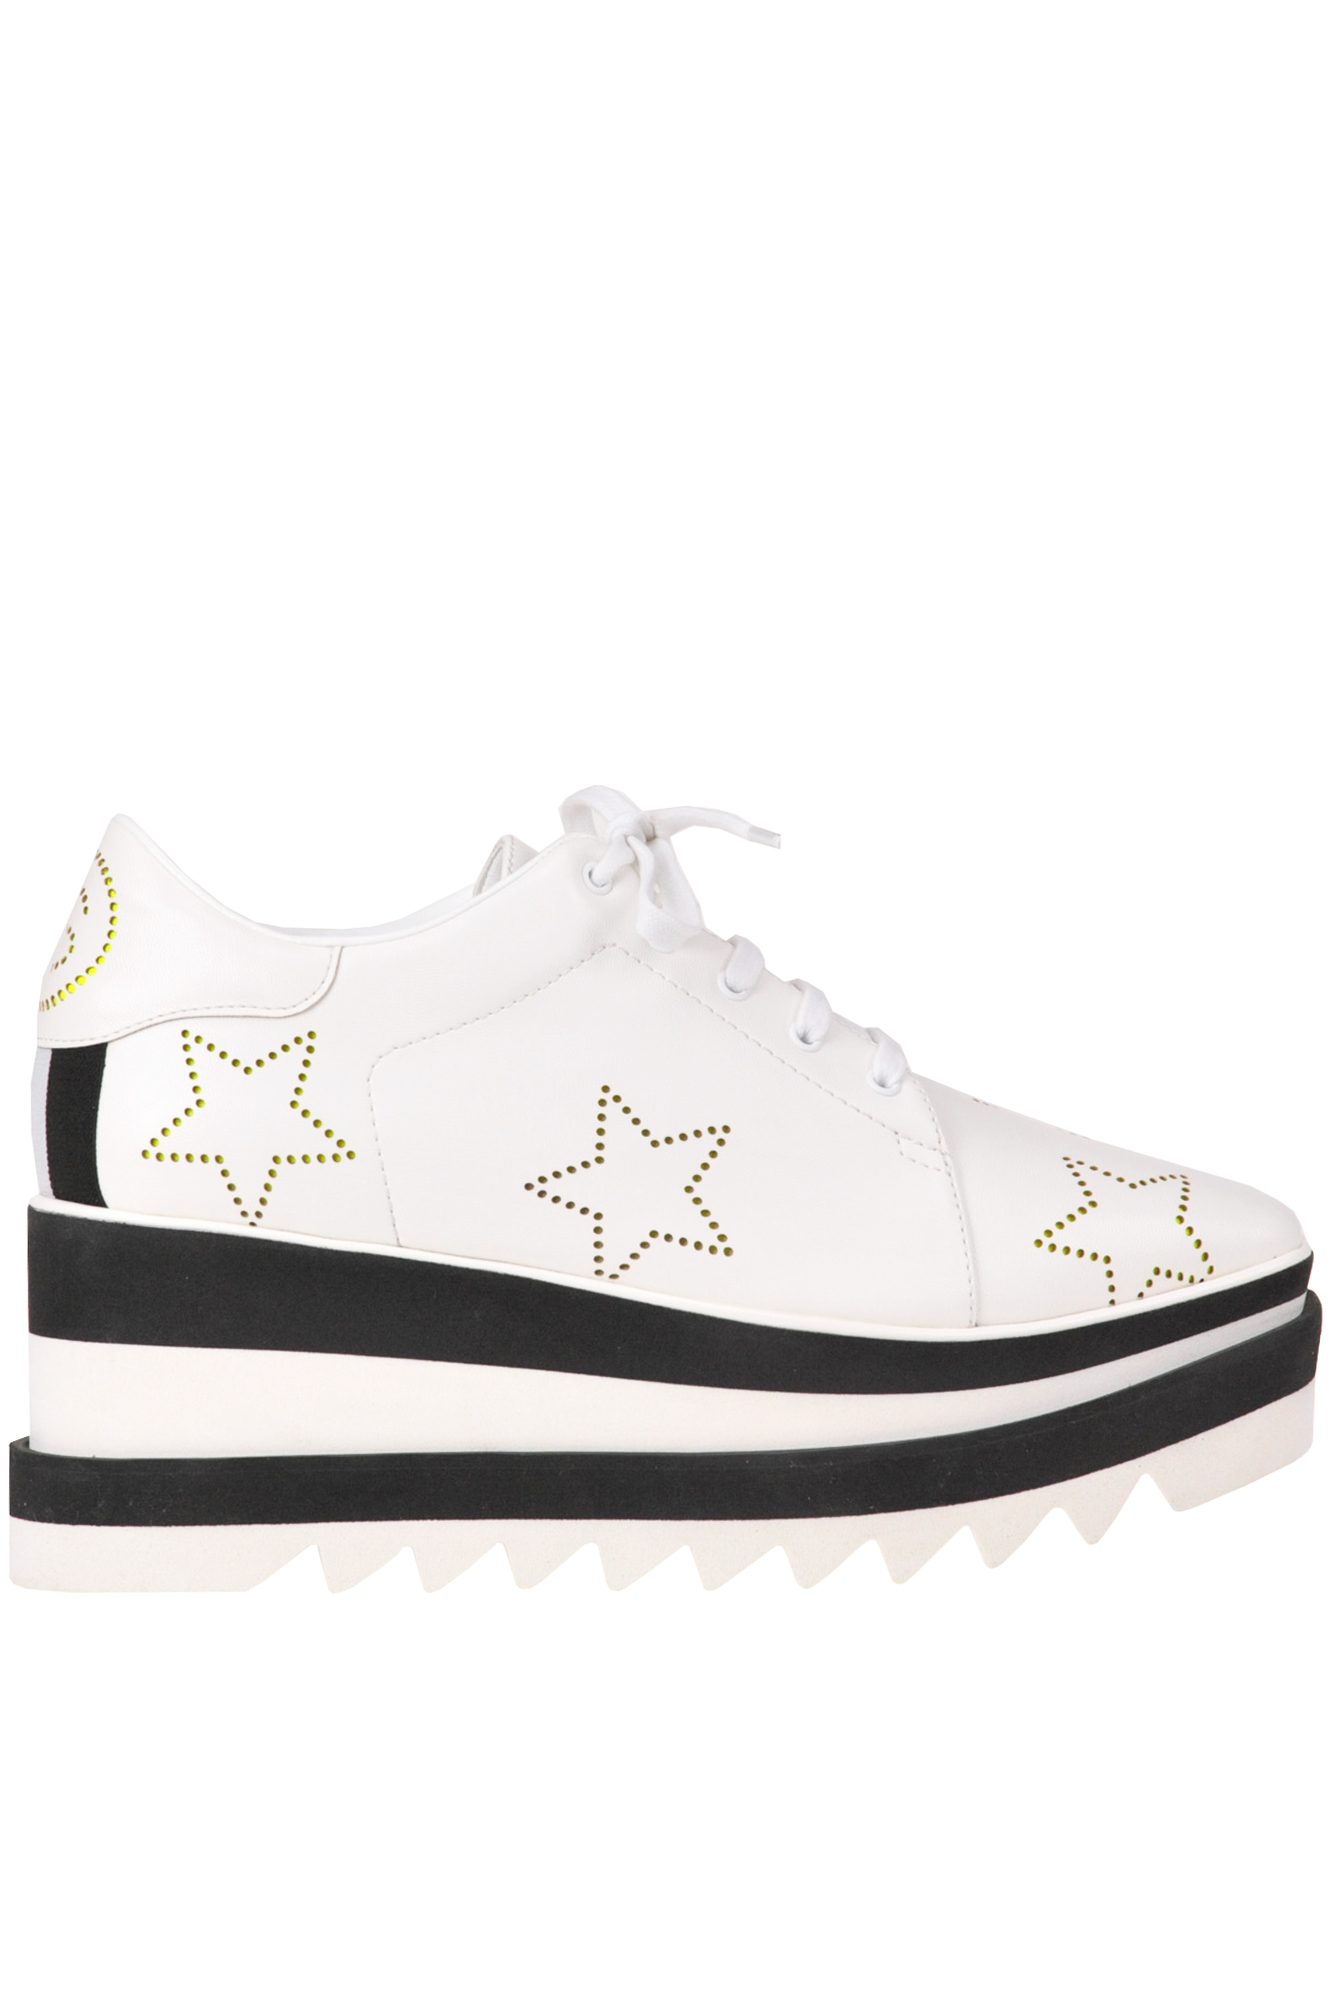 eab79312a10 Stella Mccartney Sneak-Elyse Lace-Up Perforated-Star Platform Shoes In White